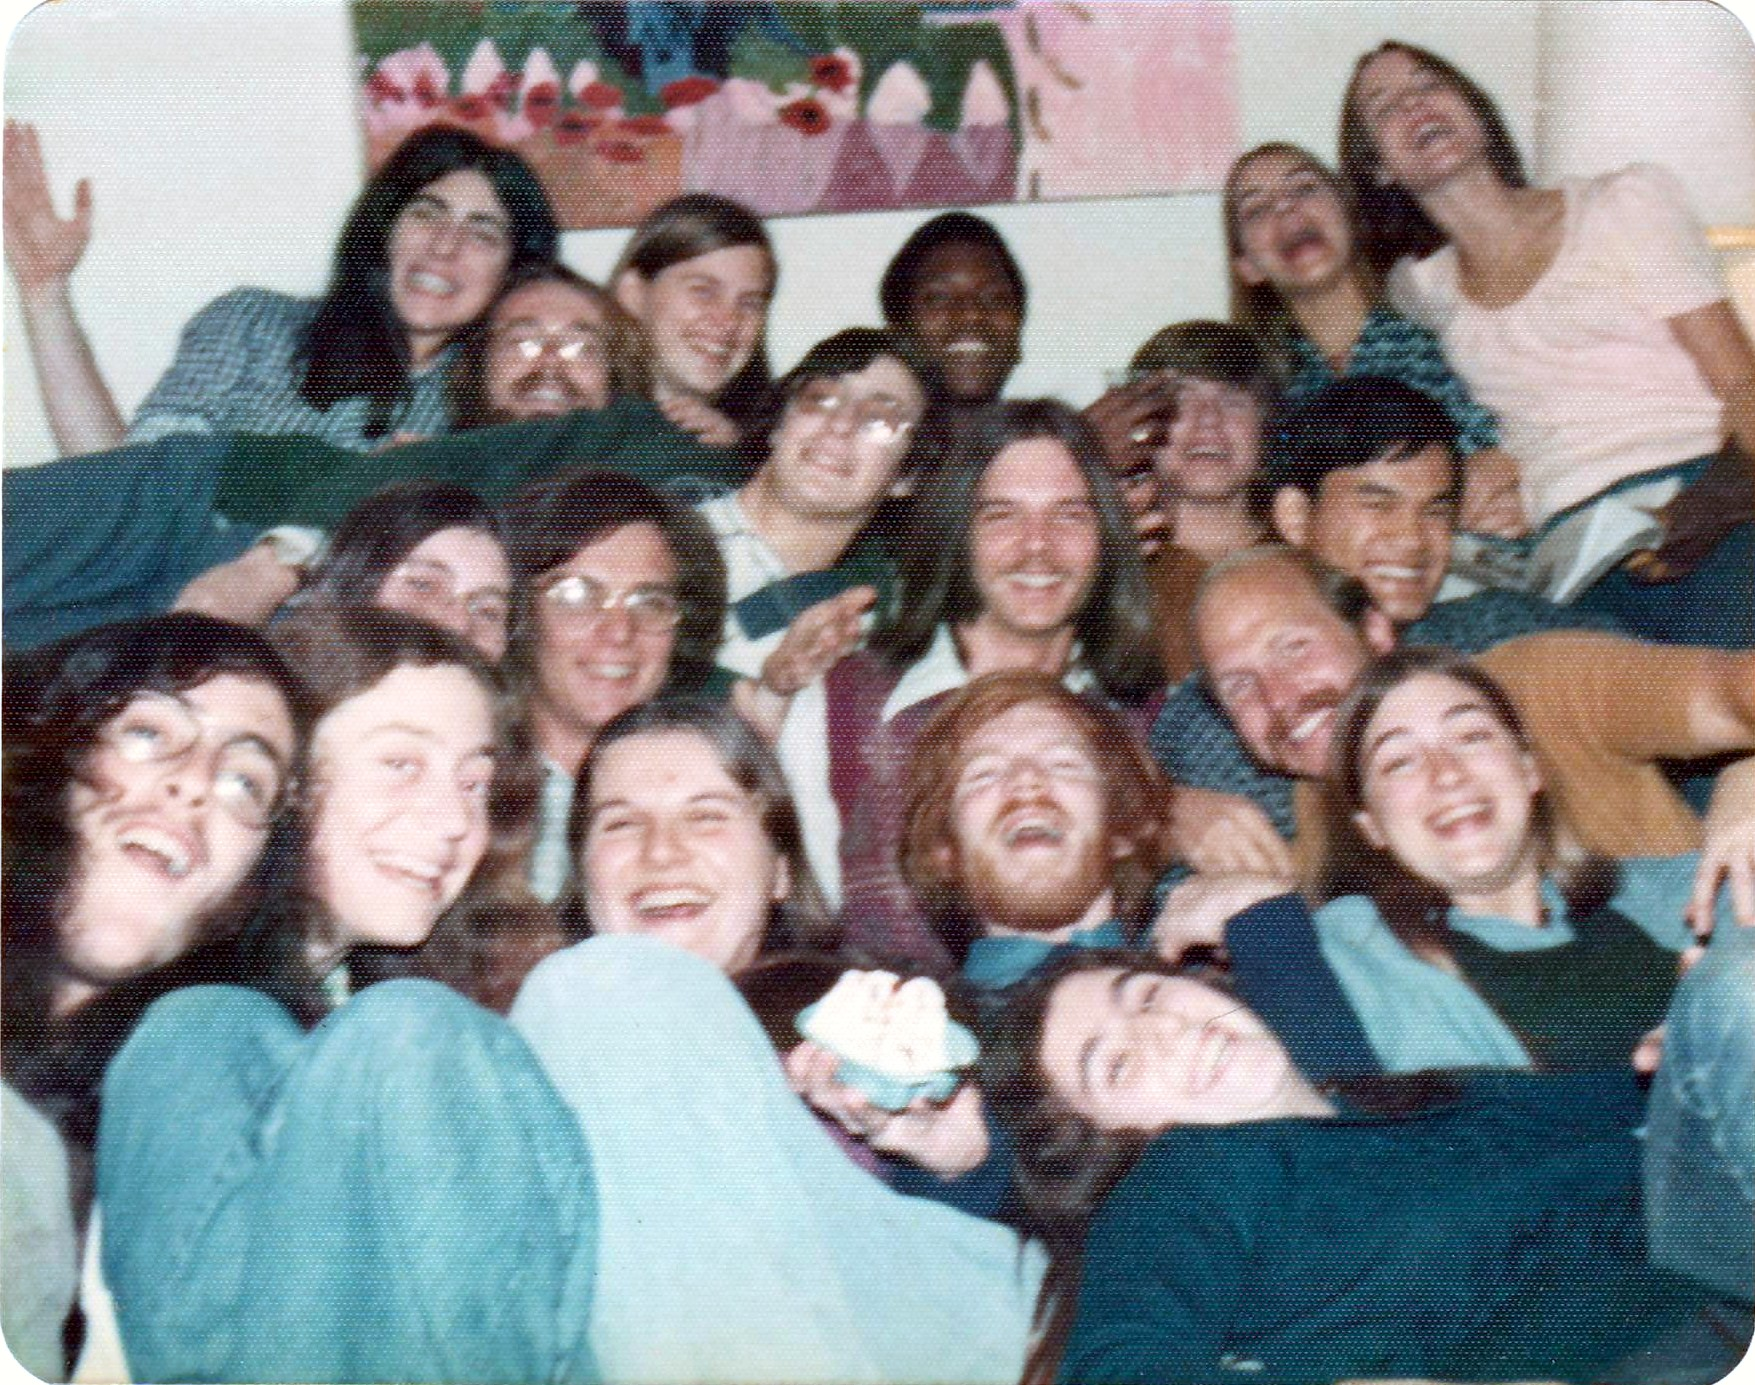 Rick Kamins with Itegrated Studies students and friends, 1973-74